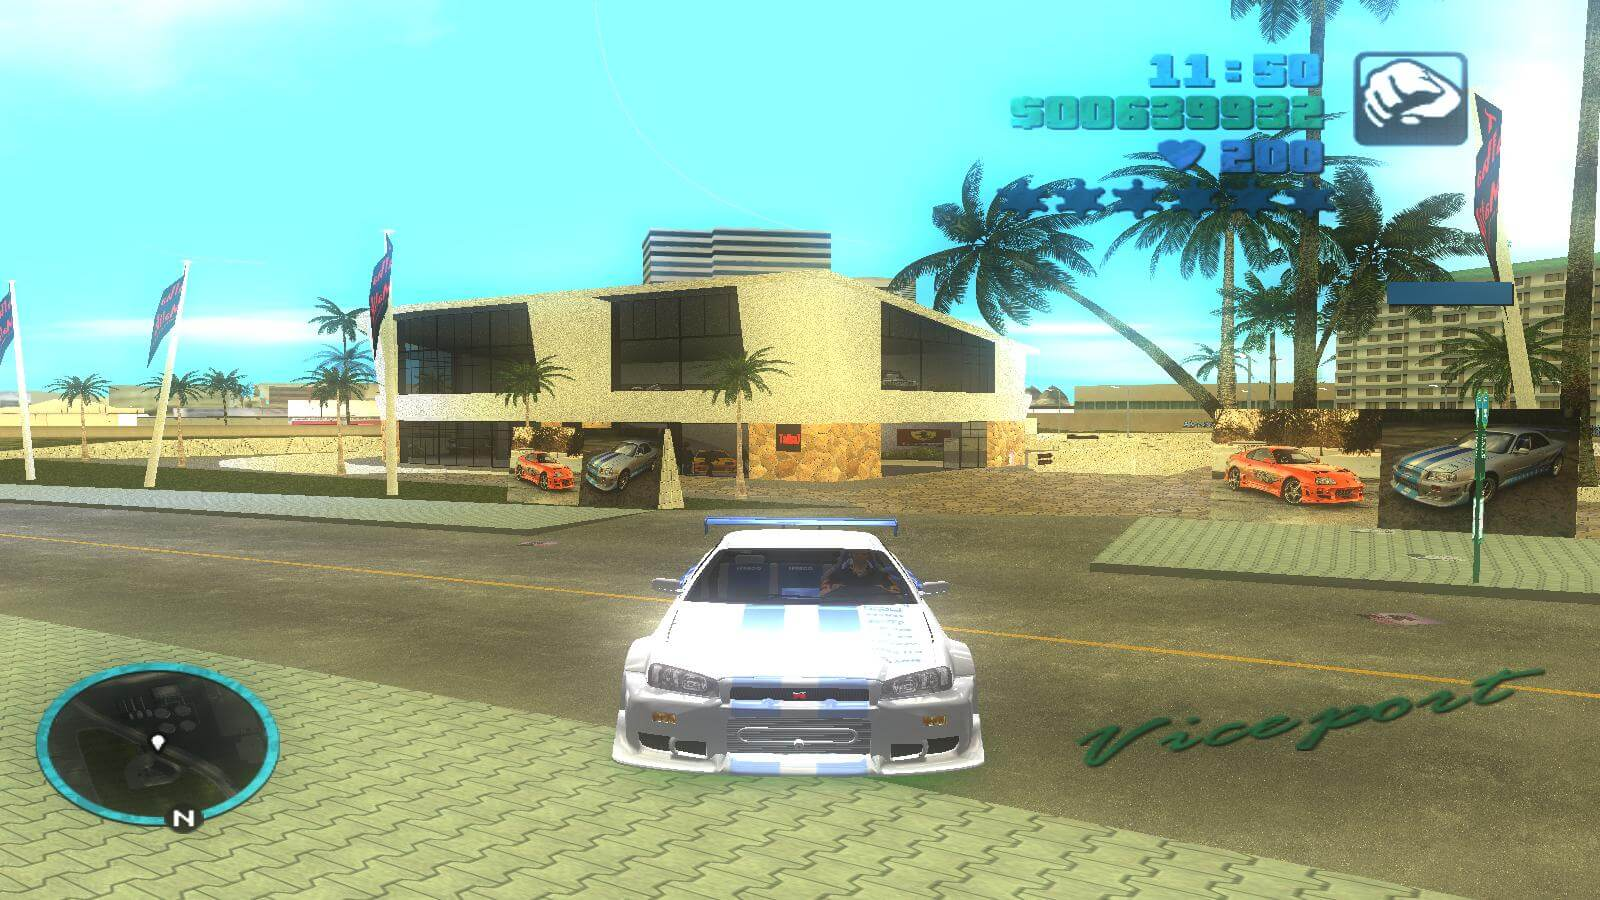 Gta vice city crack only download | Grand Theft Auto: Vice